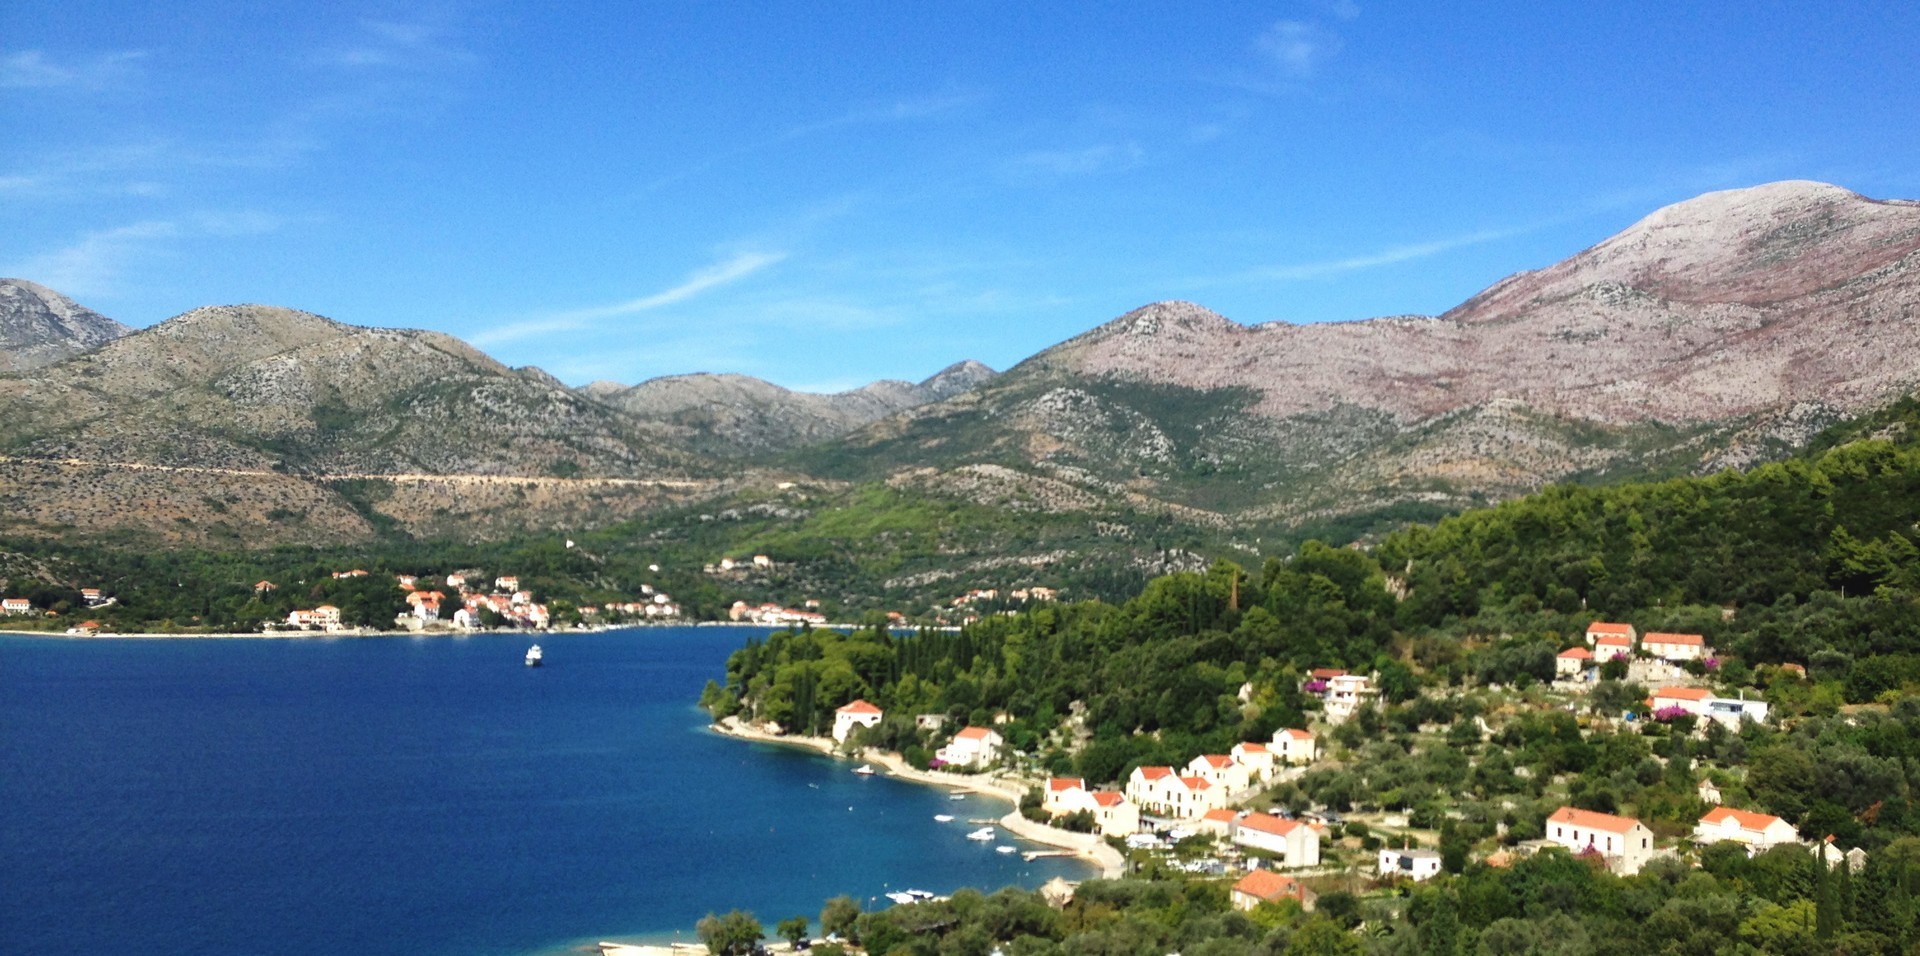 DOBAR DAN CROATIA! PART 2 – CENTRAL AND SOUTHERN DALMATIA: Split and Dubrovnik